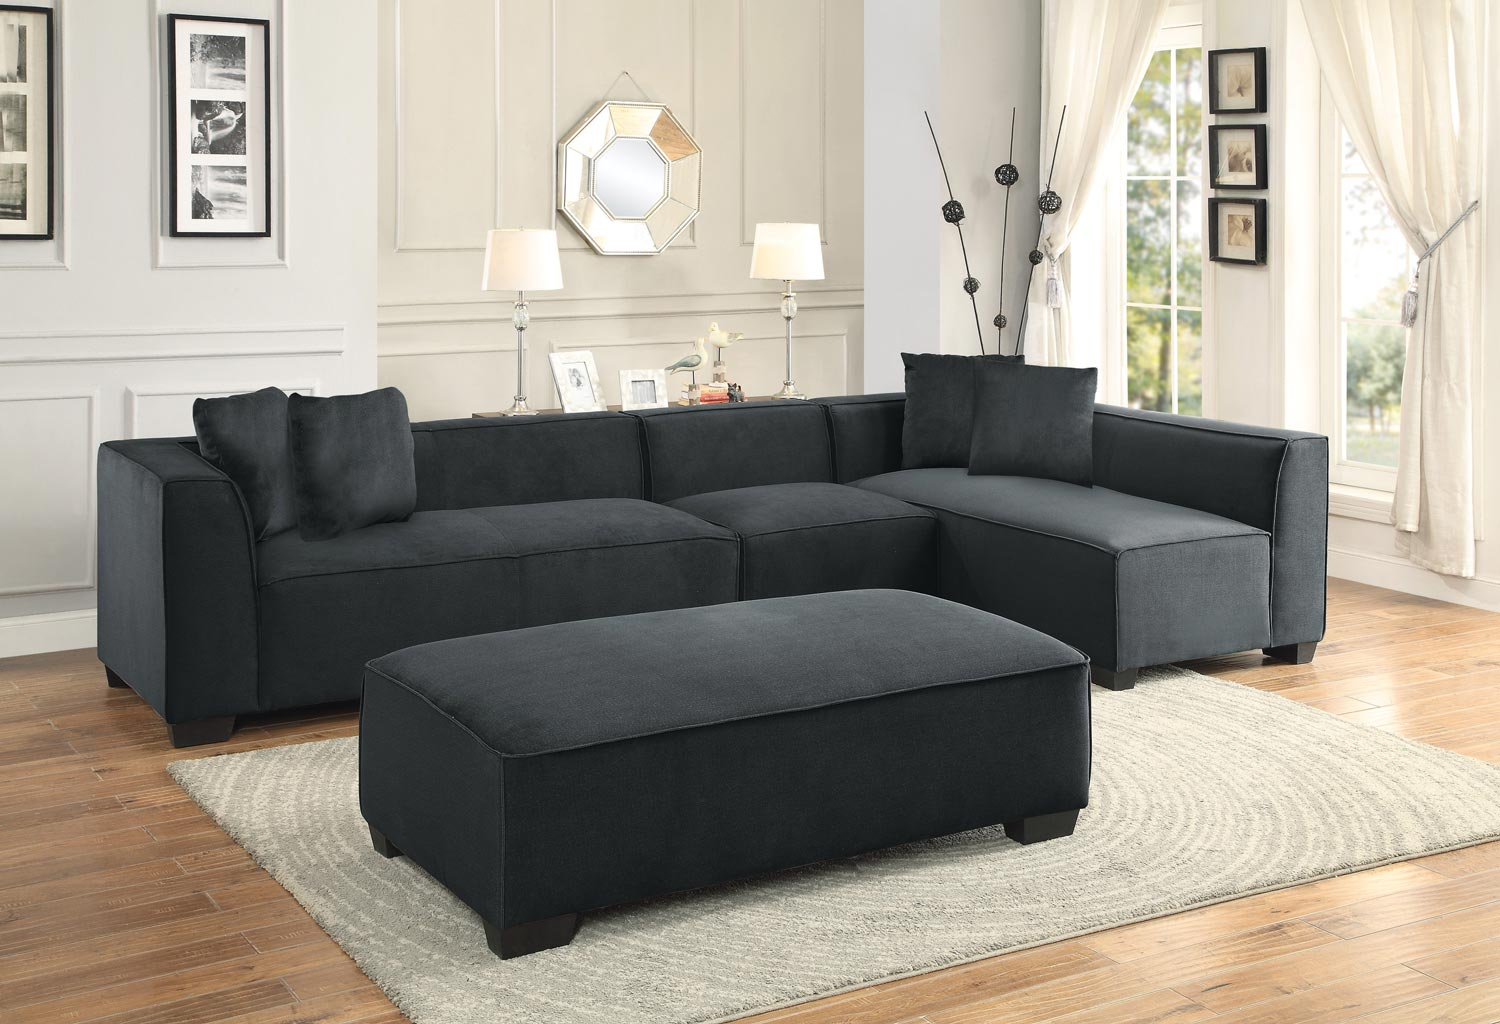 Homelegance Metz Sectional Sofa Set A - Polyester - Graphite